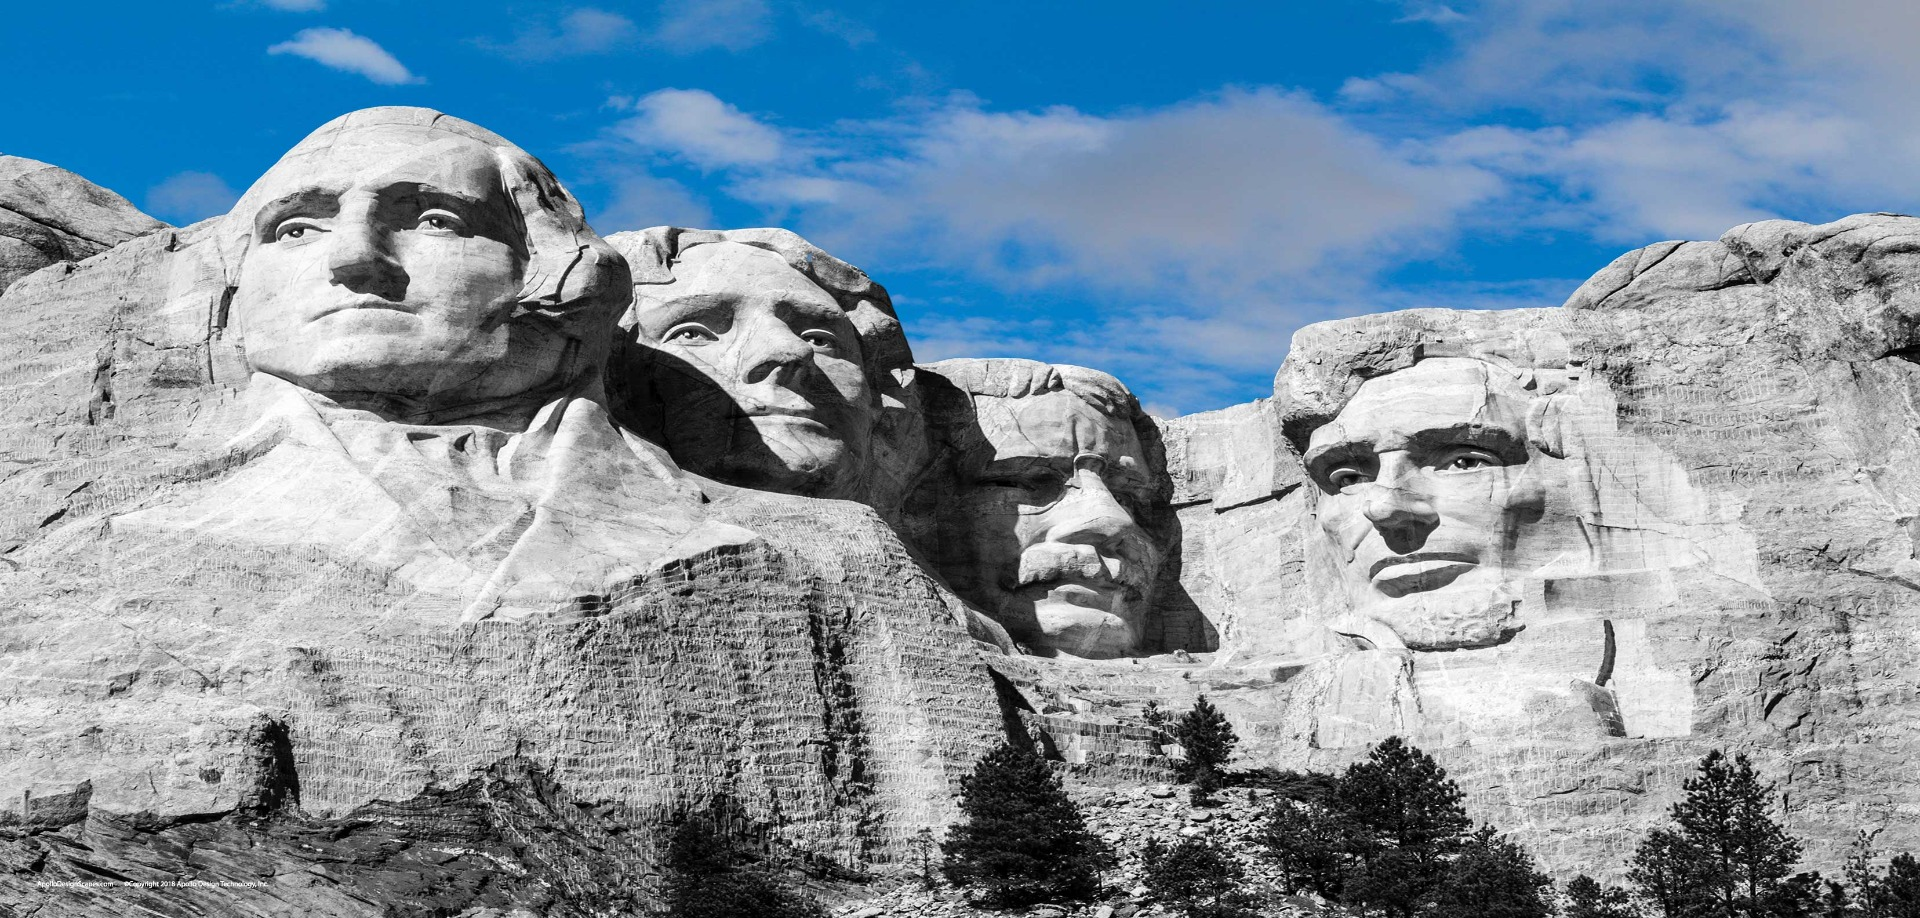 Image of Mt. Rushmore